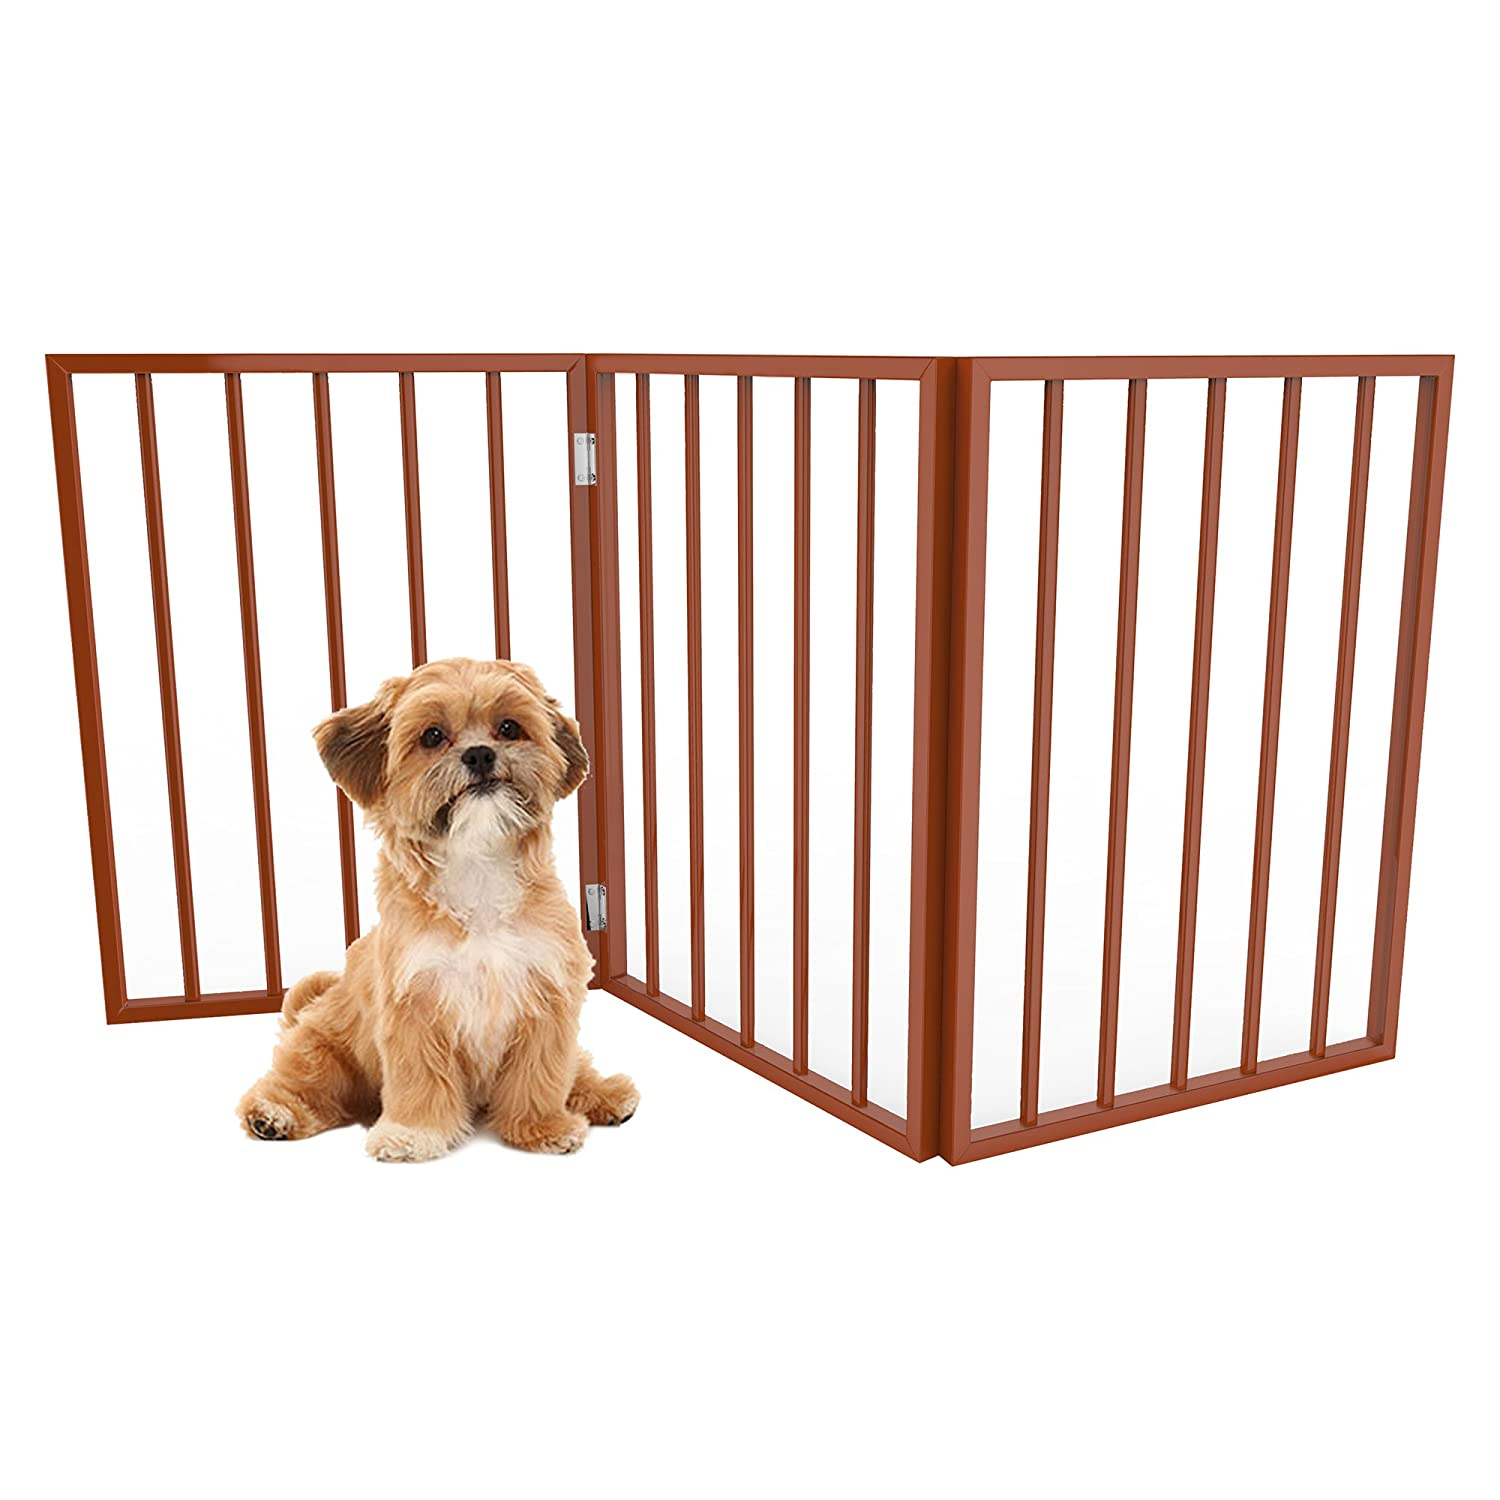 PETMAKER Foldable, Free-Standing Wooden Pet Gate- Light Weight, Indoor Barrier for Small Dogs Cats by Light Brown, 24 Inch Step Over Doorway Fence